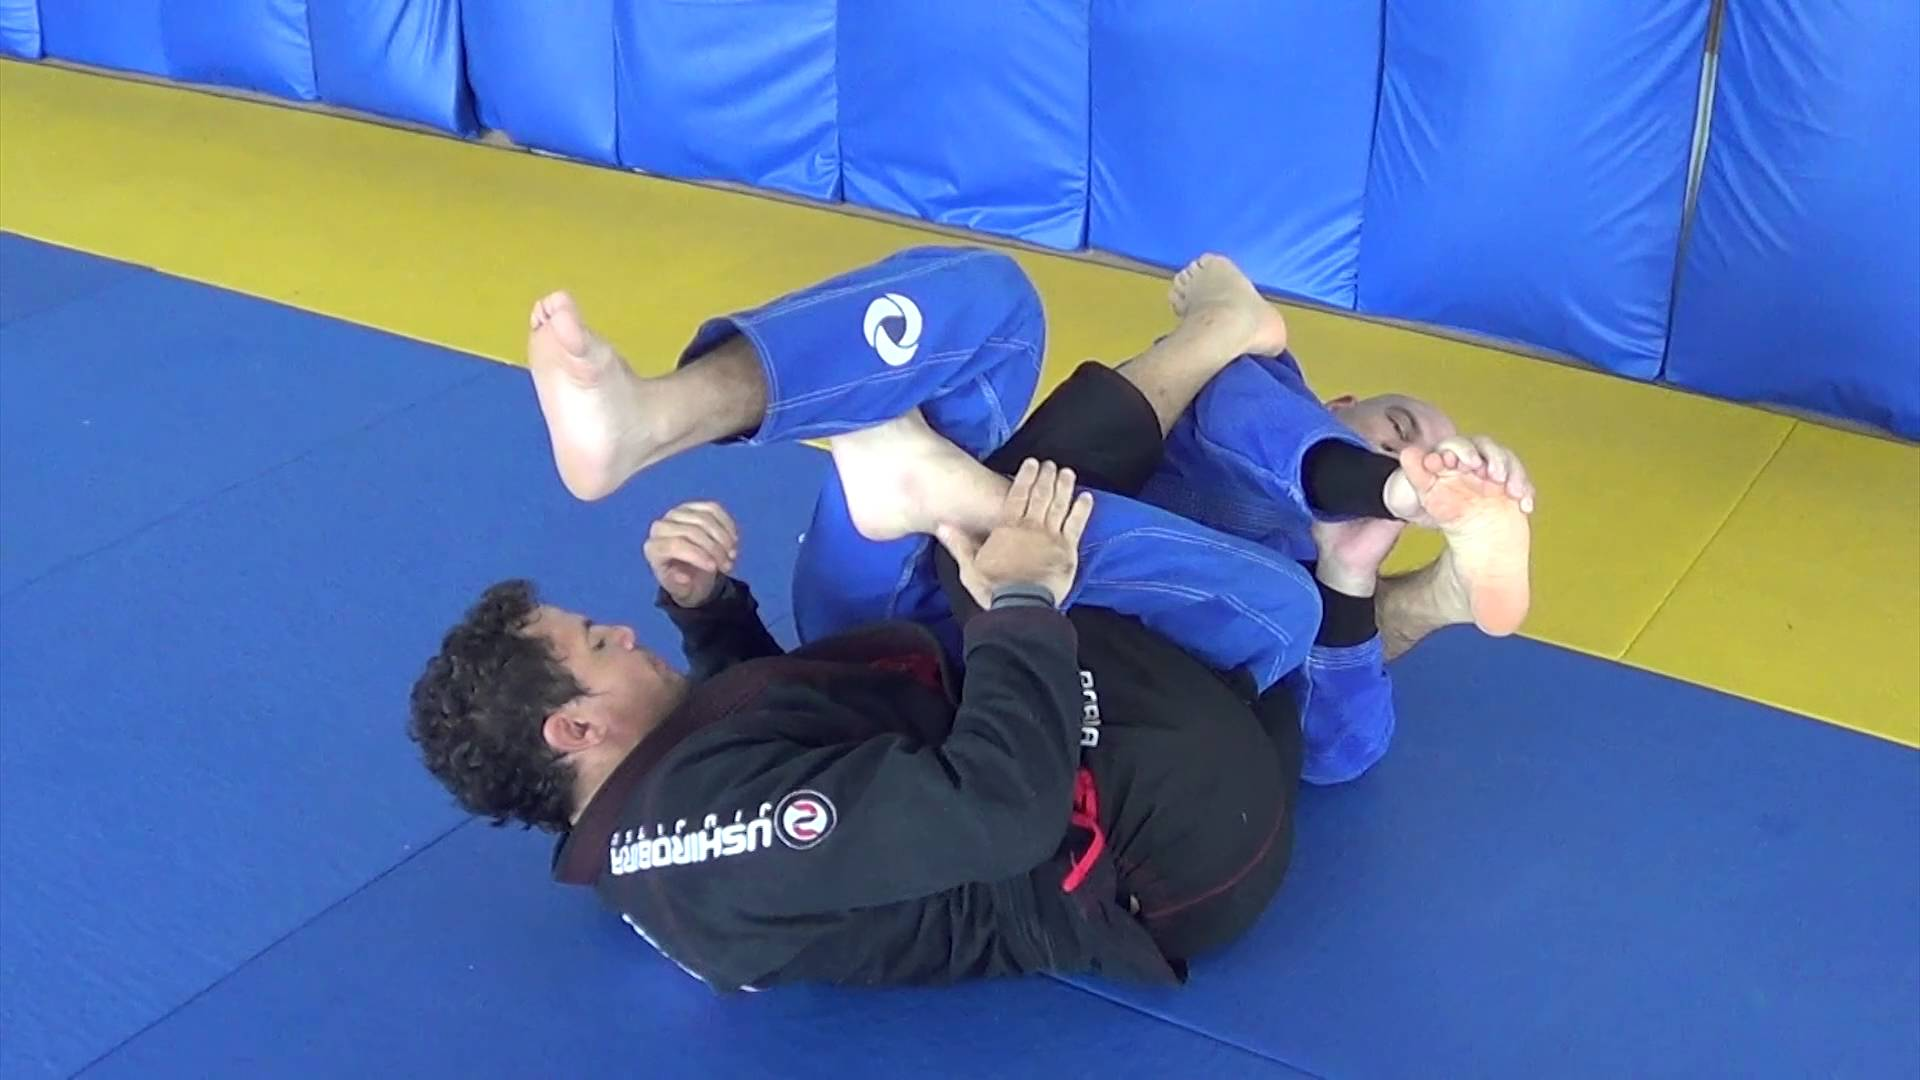 If you can't pass the guard attack the legs